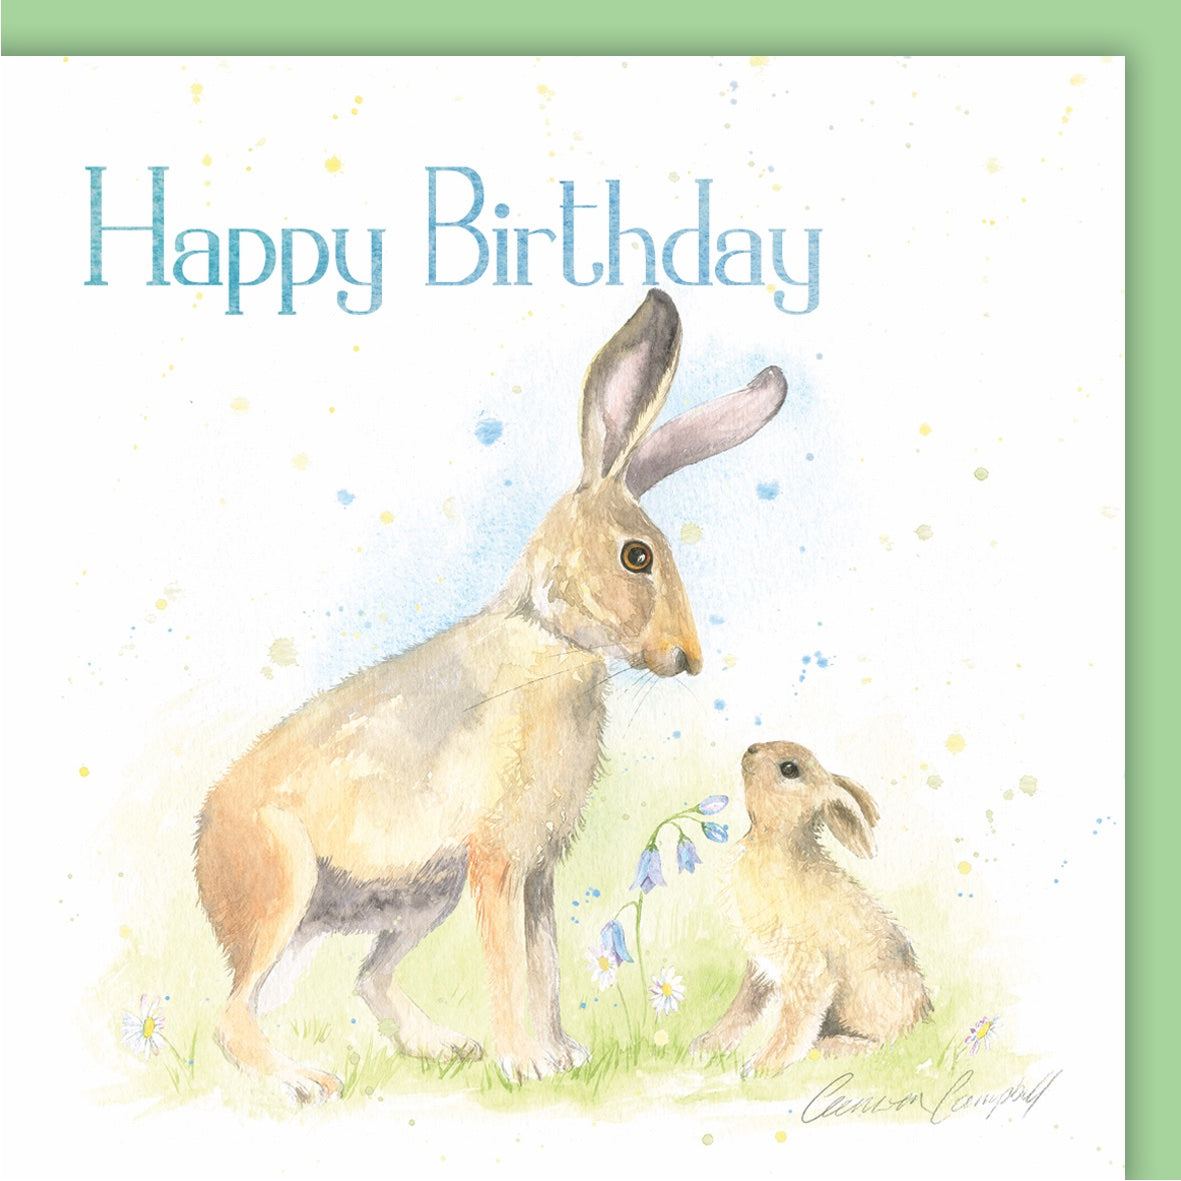 Hare hares baby birthday card Ceinwen Campbell the arty Penguin